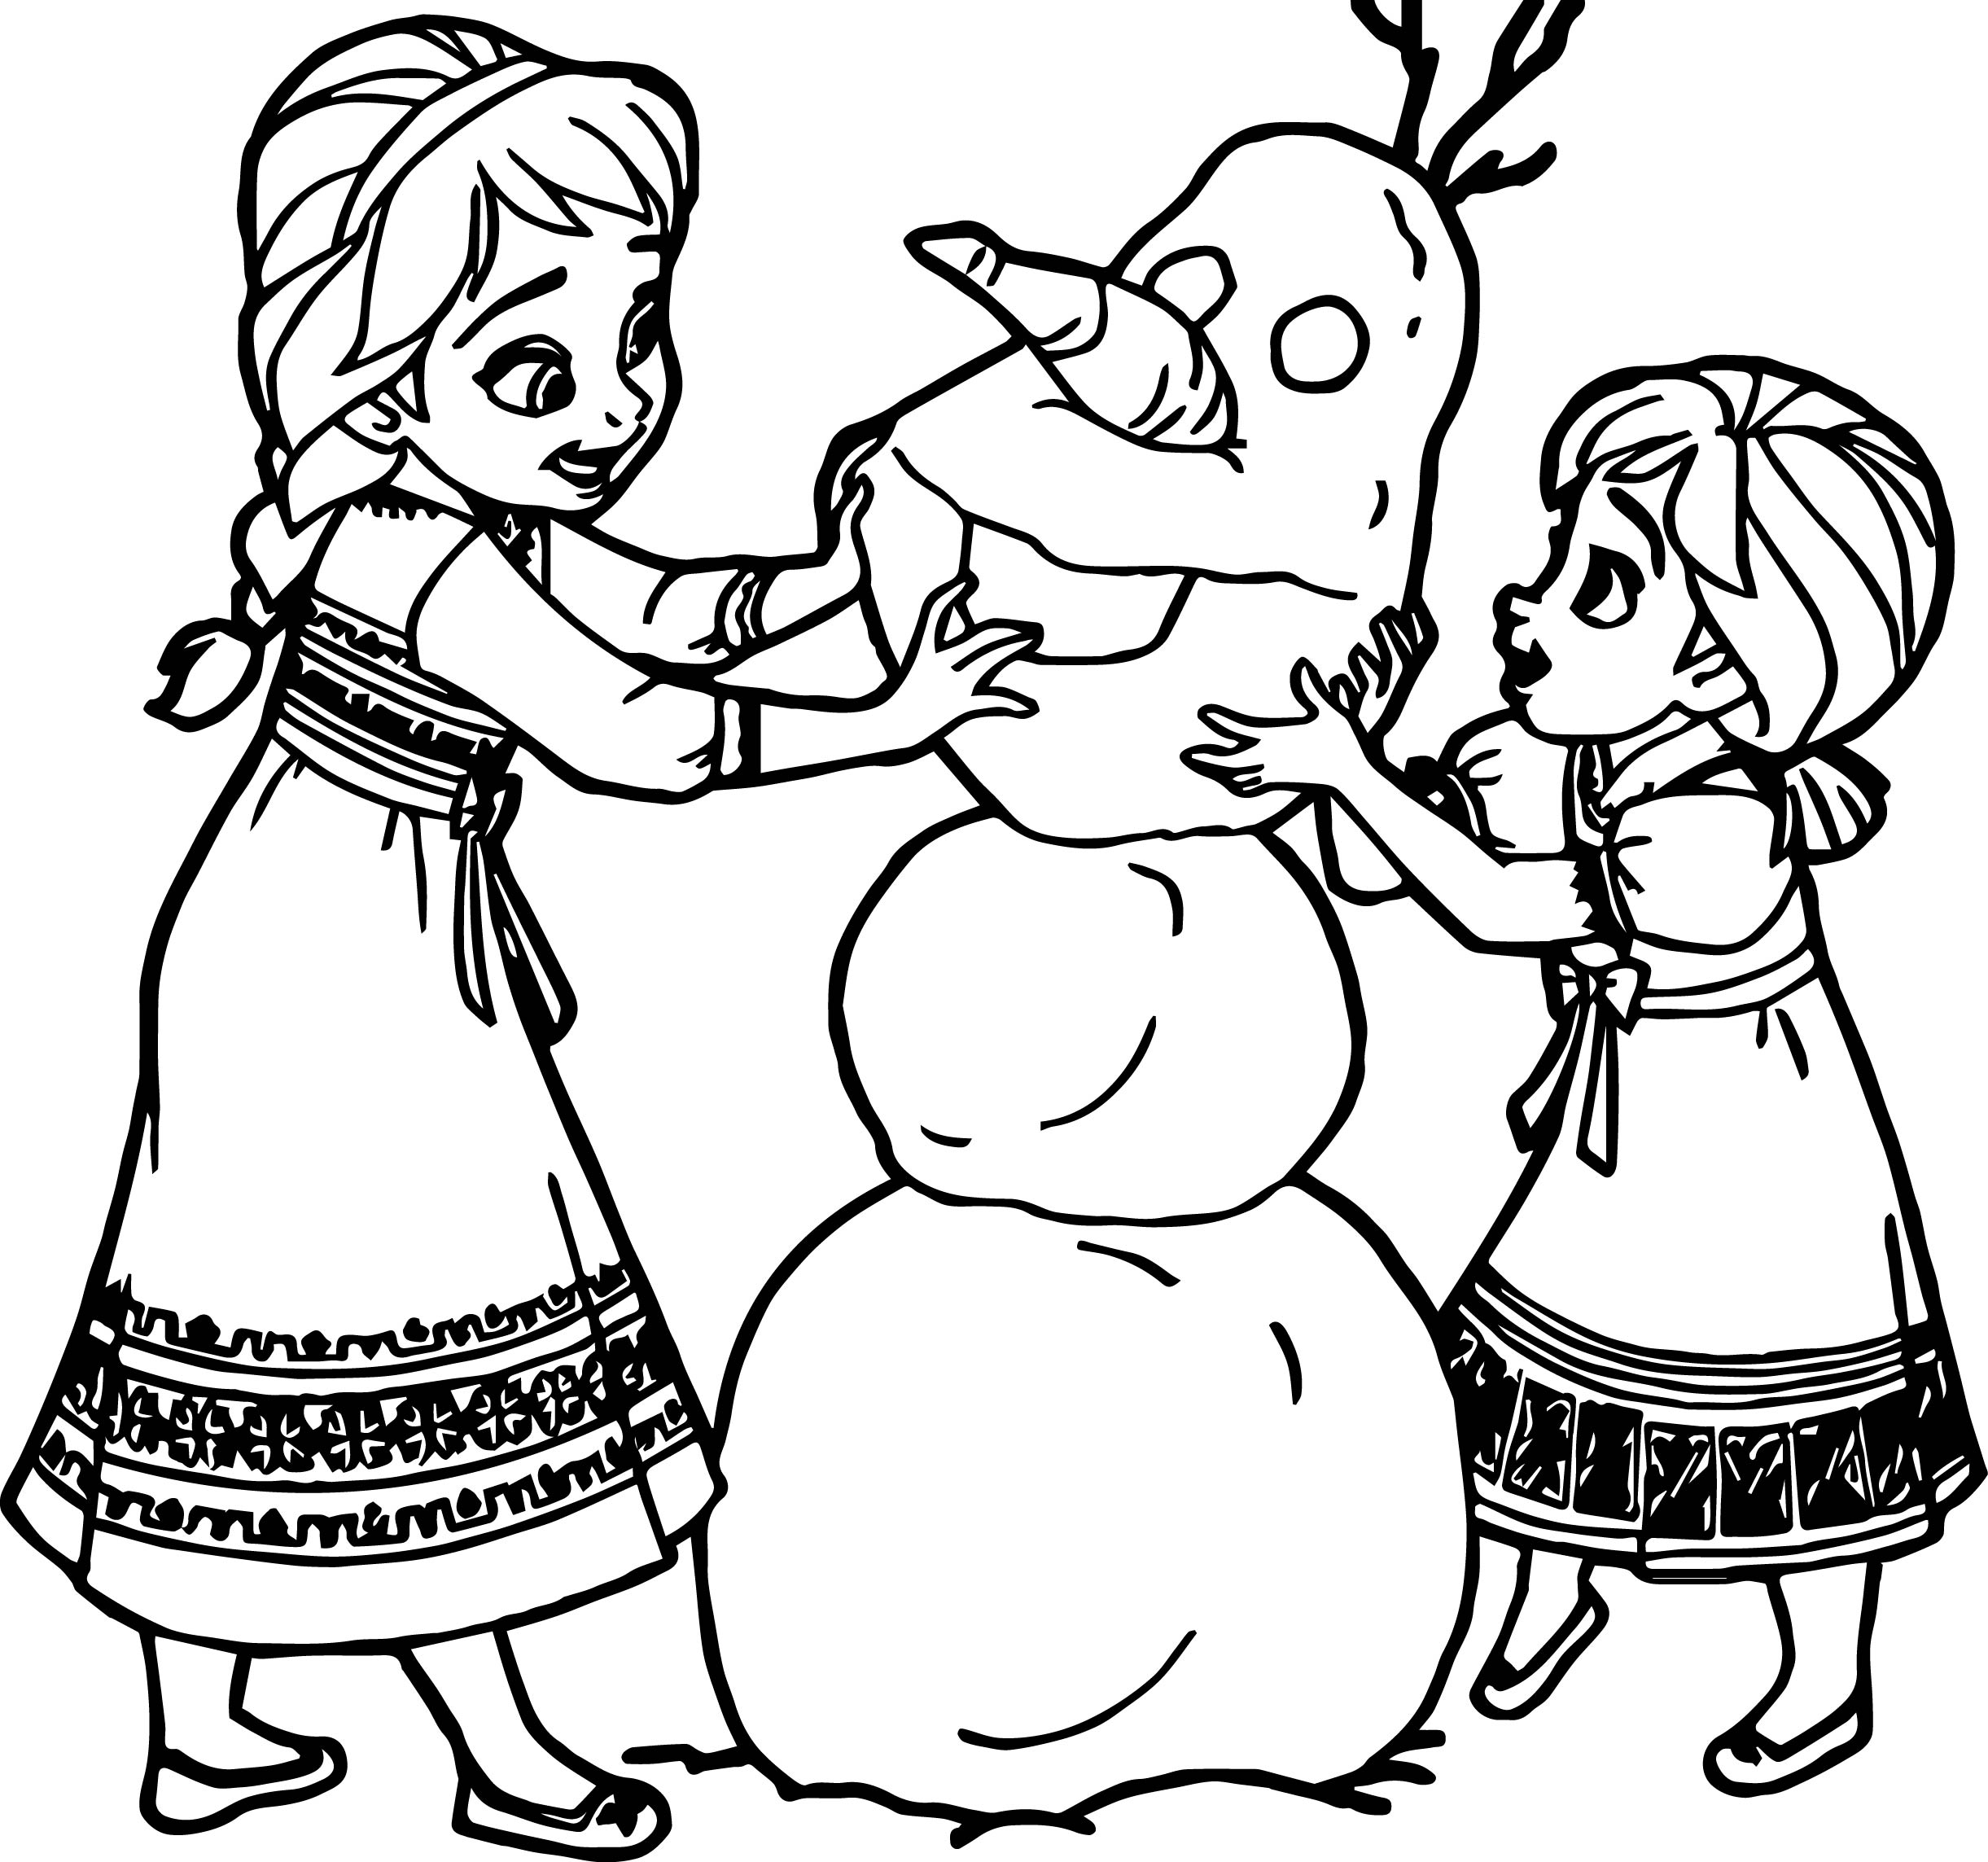 young anna elsa snow man coloring page - Elsa And Anna Coloring Pages